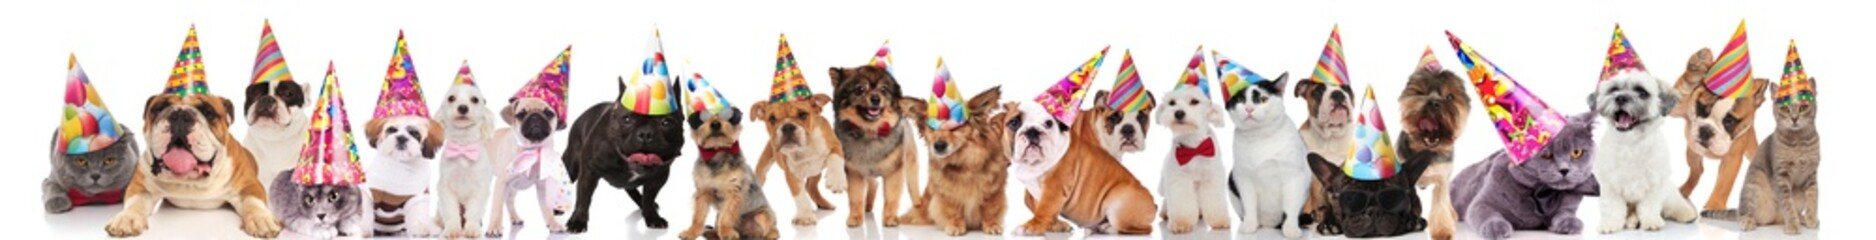 team of many cats and dogs wearing birthday hats